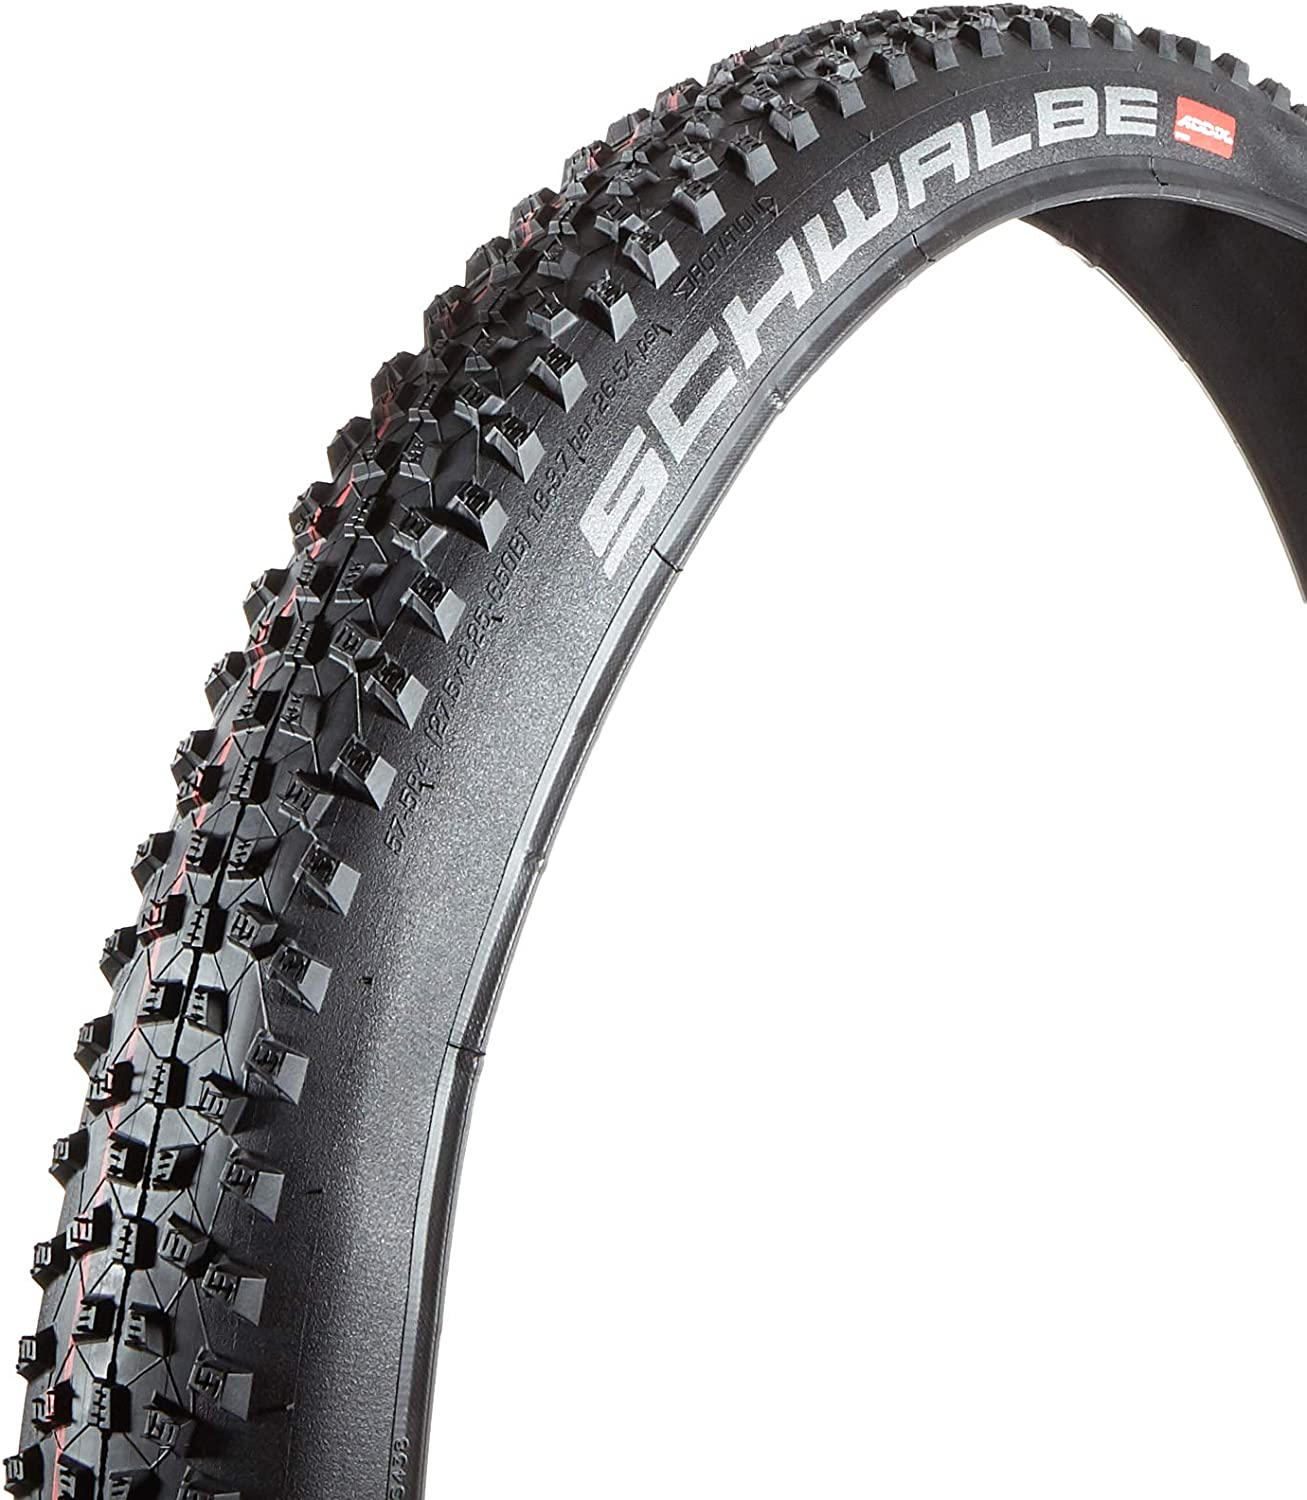 New Schwalbe Racing Ralph Liteskin Tire 29 x 2.25 EVO Folding Bead Black w//Addix